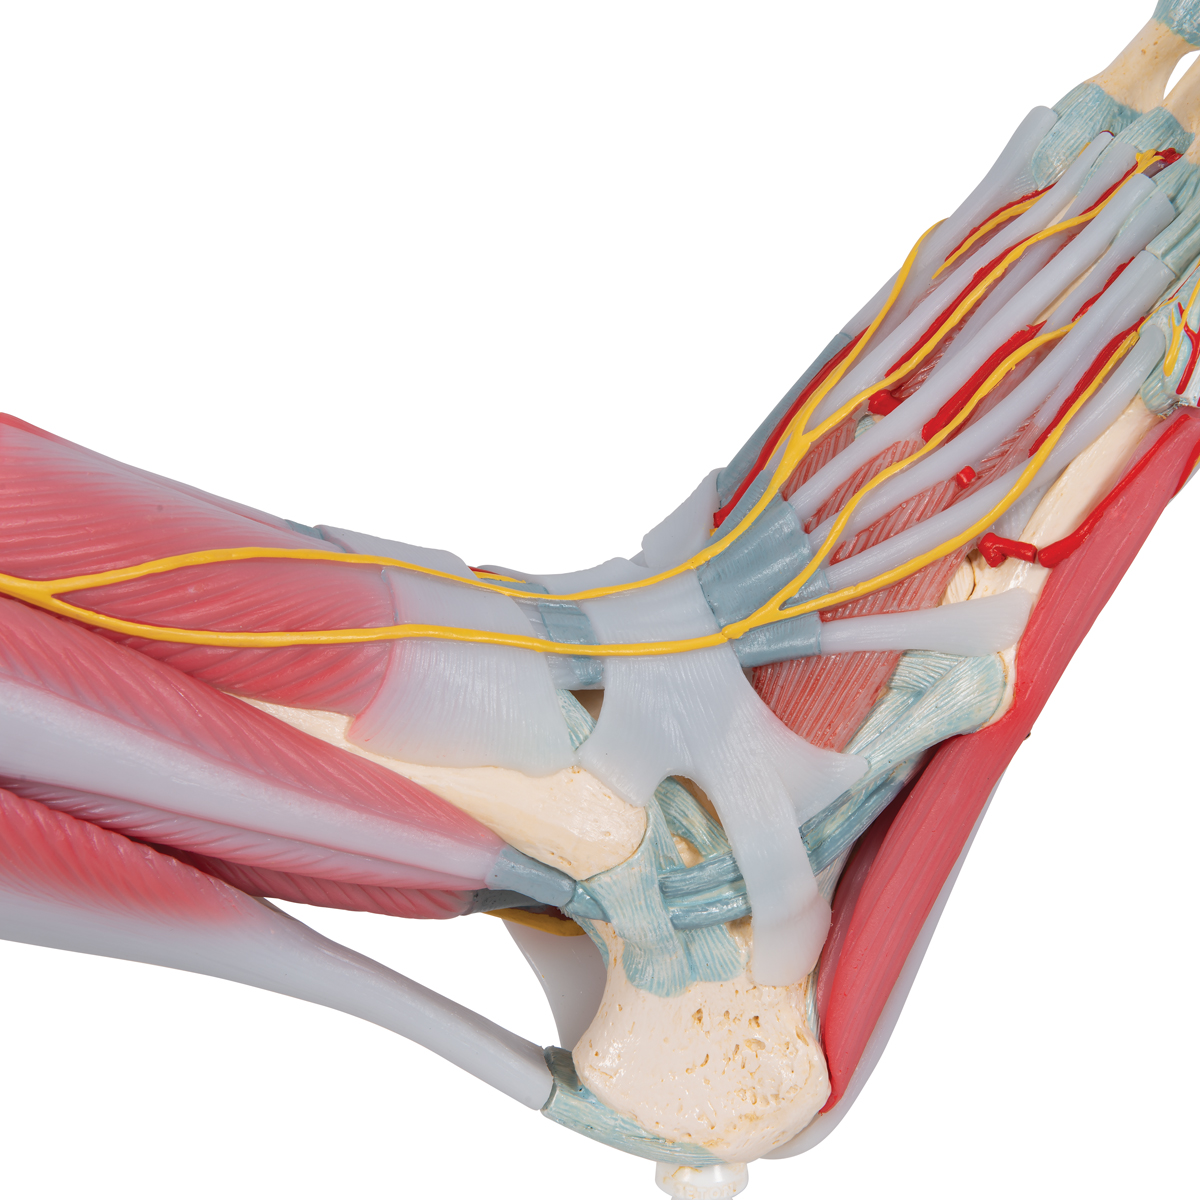 Anatomical Teaching Models Plastic Human Joint Models Foot Skeleton Model With Ligaments And Muscles